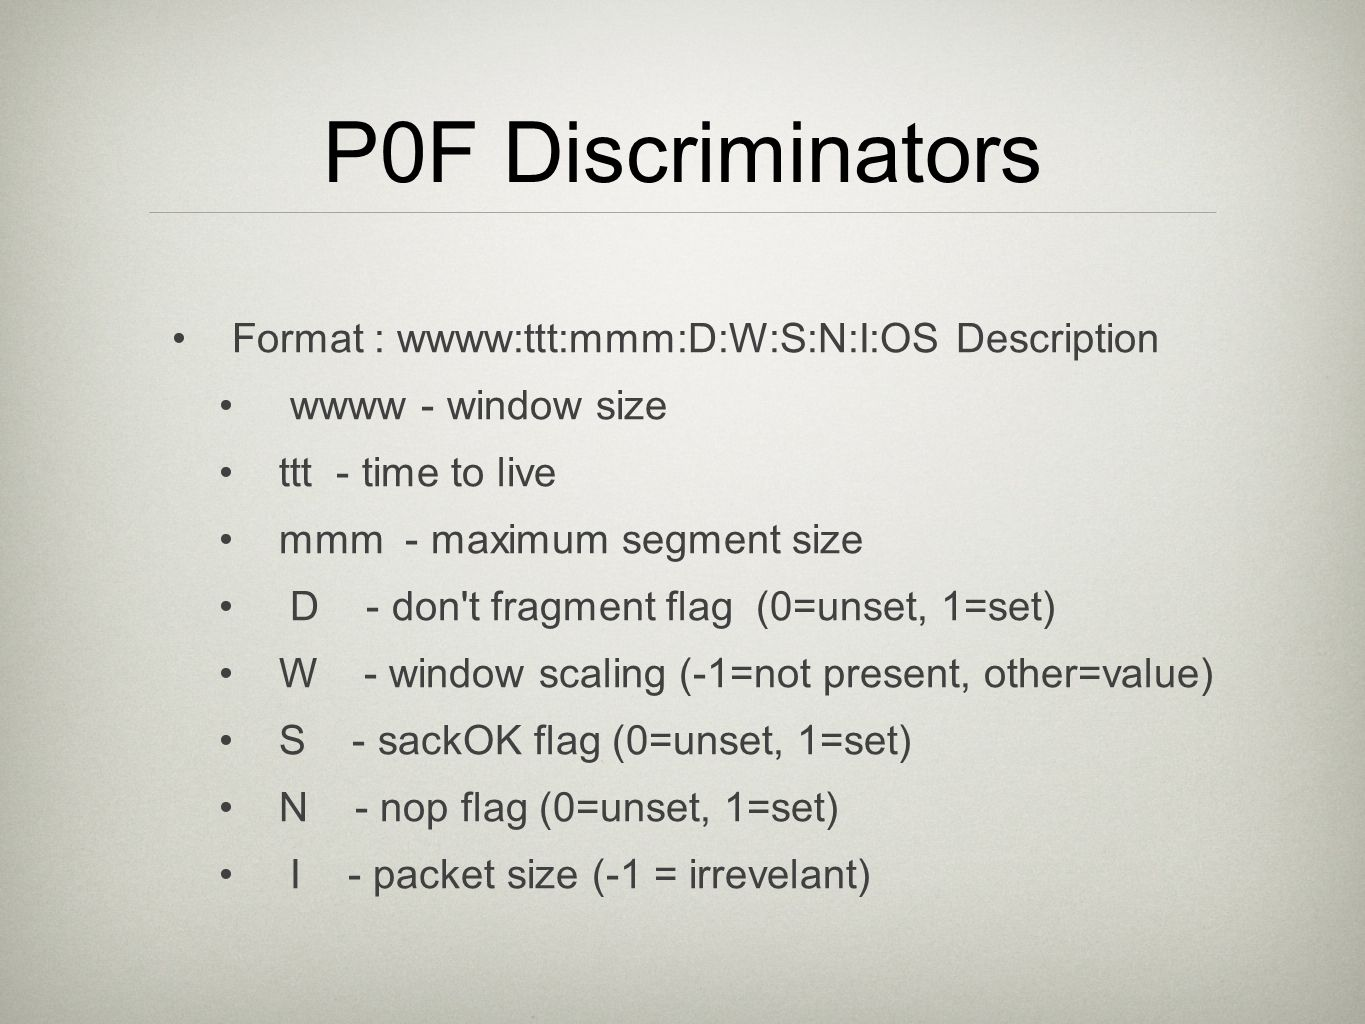 P0F Discriminators Format : wwww:ttt:mmm:D:W:S:N:I:OS Description wwww - window size ttt - time to live mmm - maximum segment size D - don t fragment flag (0=unset, 1=set) W - window scaling (-1=not present, other=value) S - sackOK flag (0=unset, 1=set) N - nop flag (0=unset, 1=set) I - packet size (-1 = irrevelant)